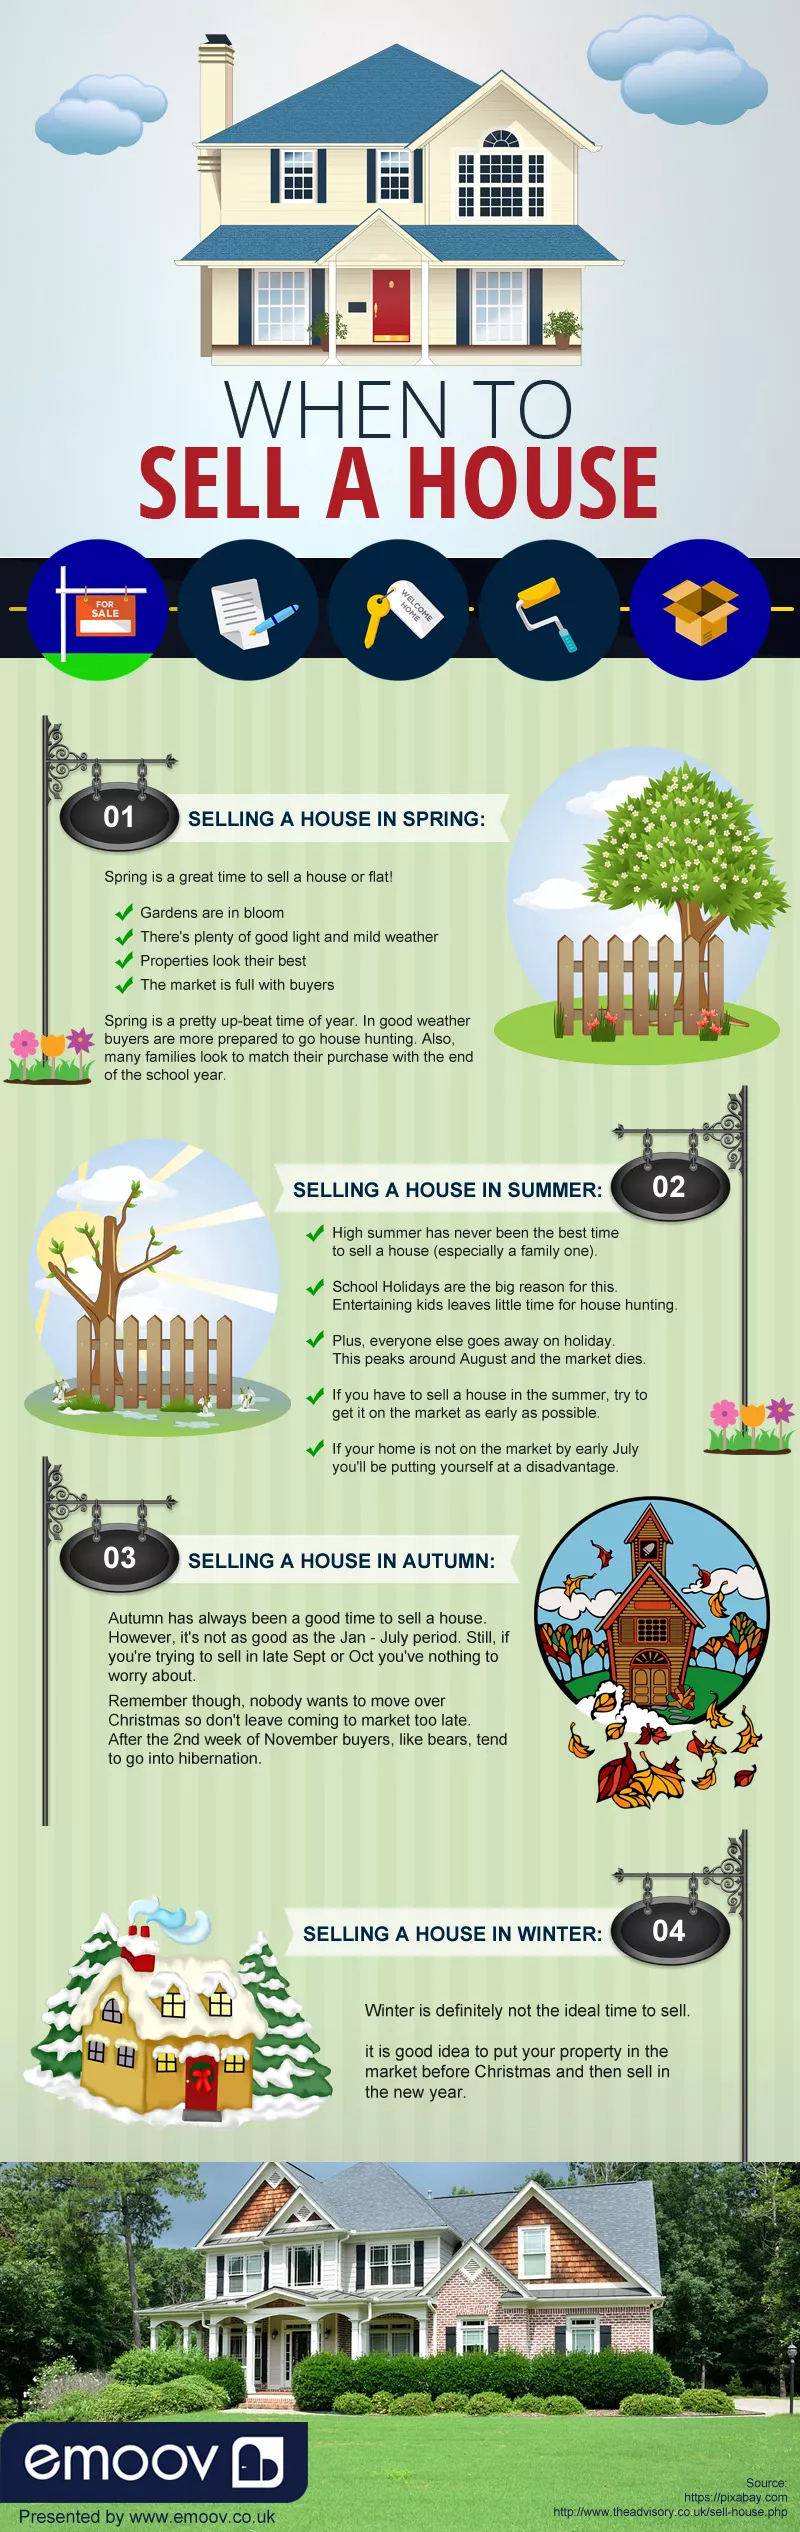 When Is The Right Time To Sell Your House? - Infographic